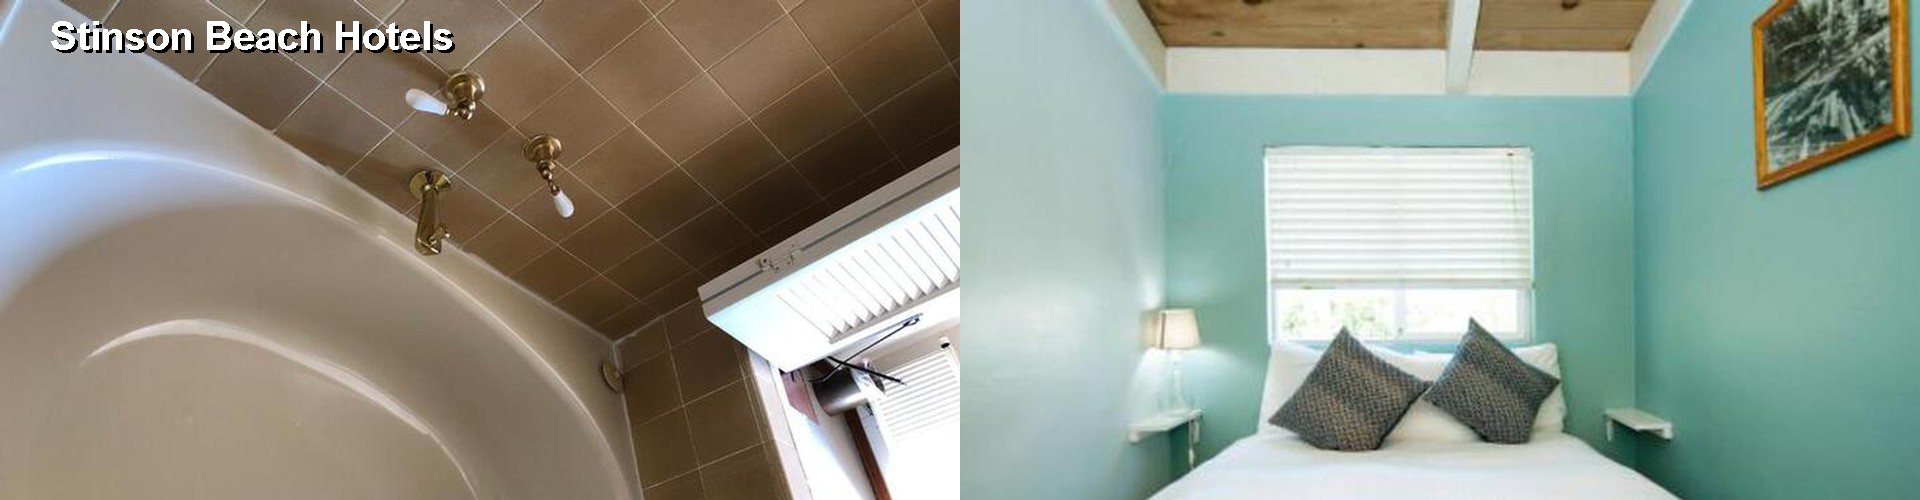 5 Best Hotels near Stinson Beach